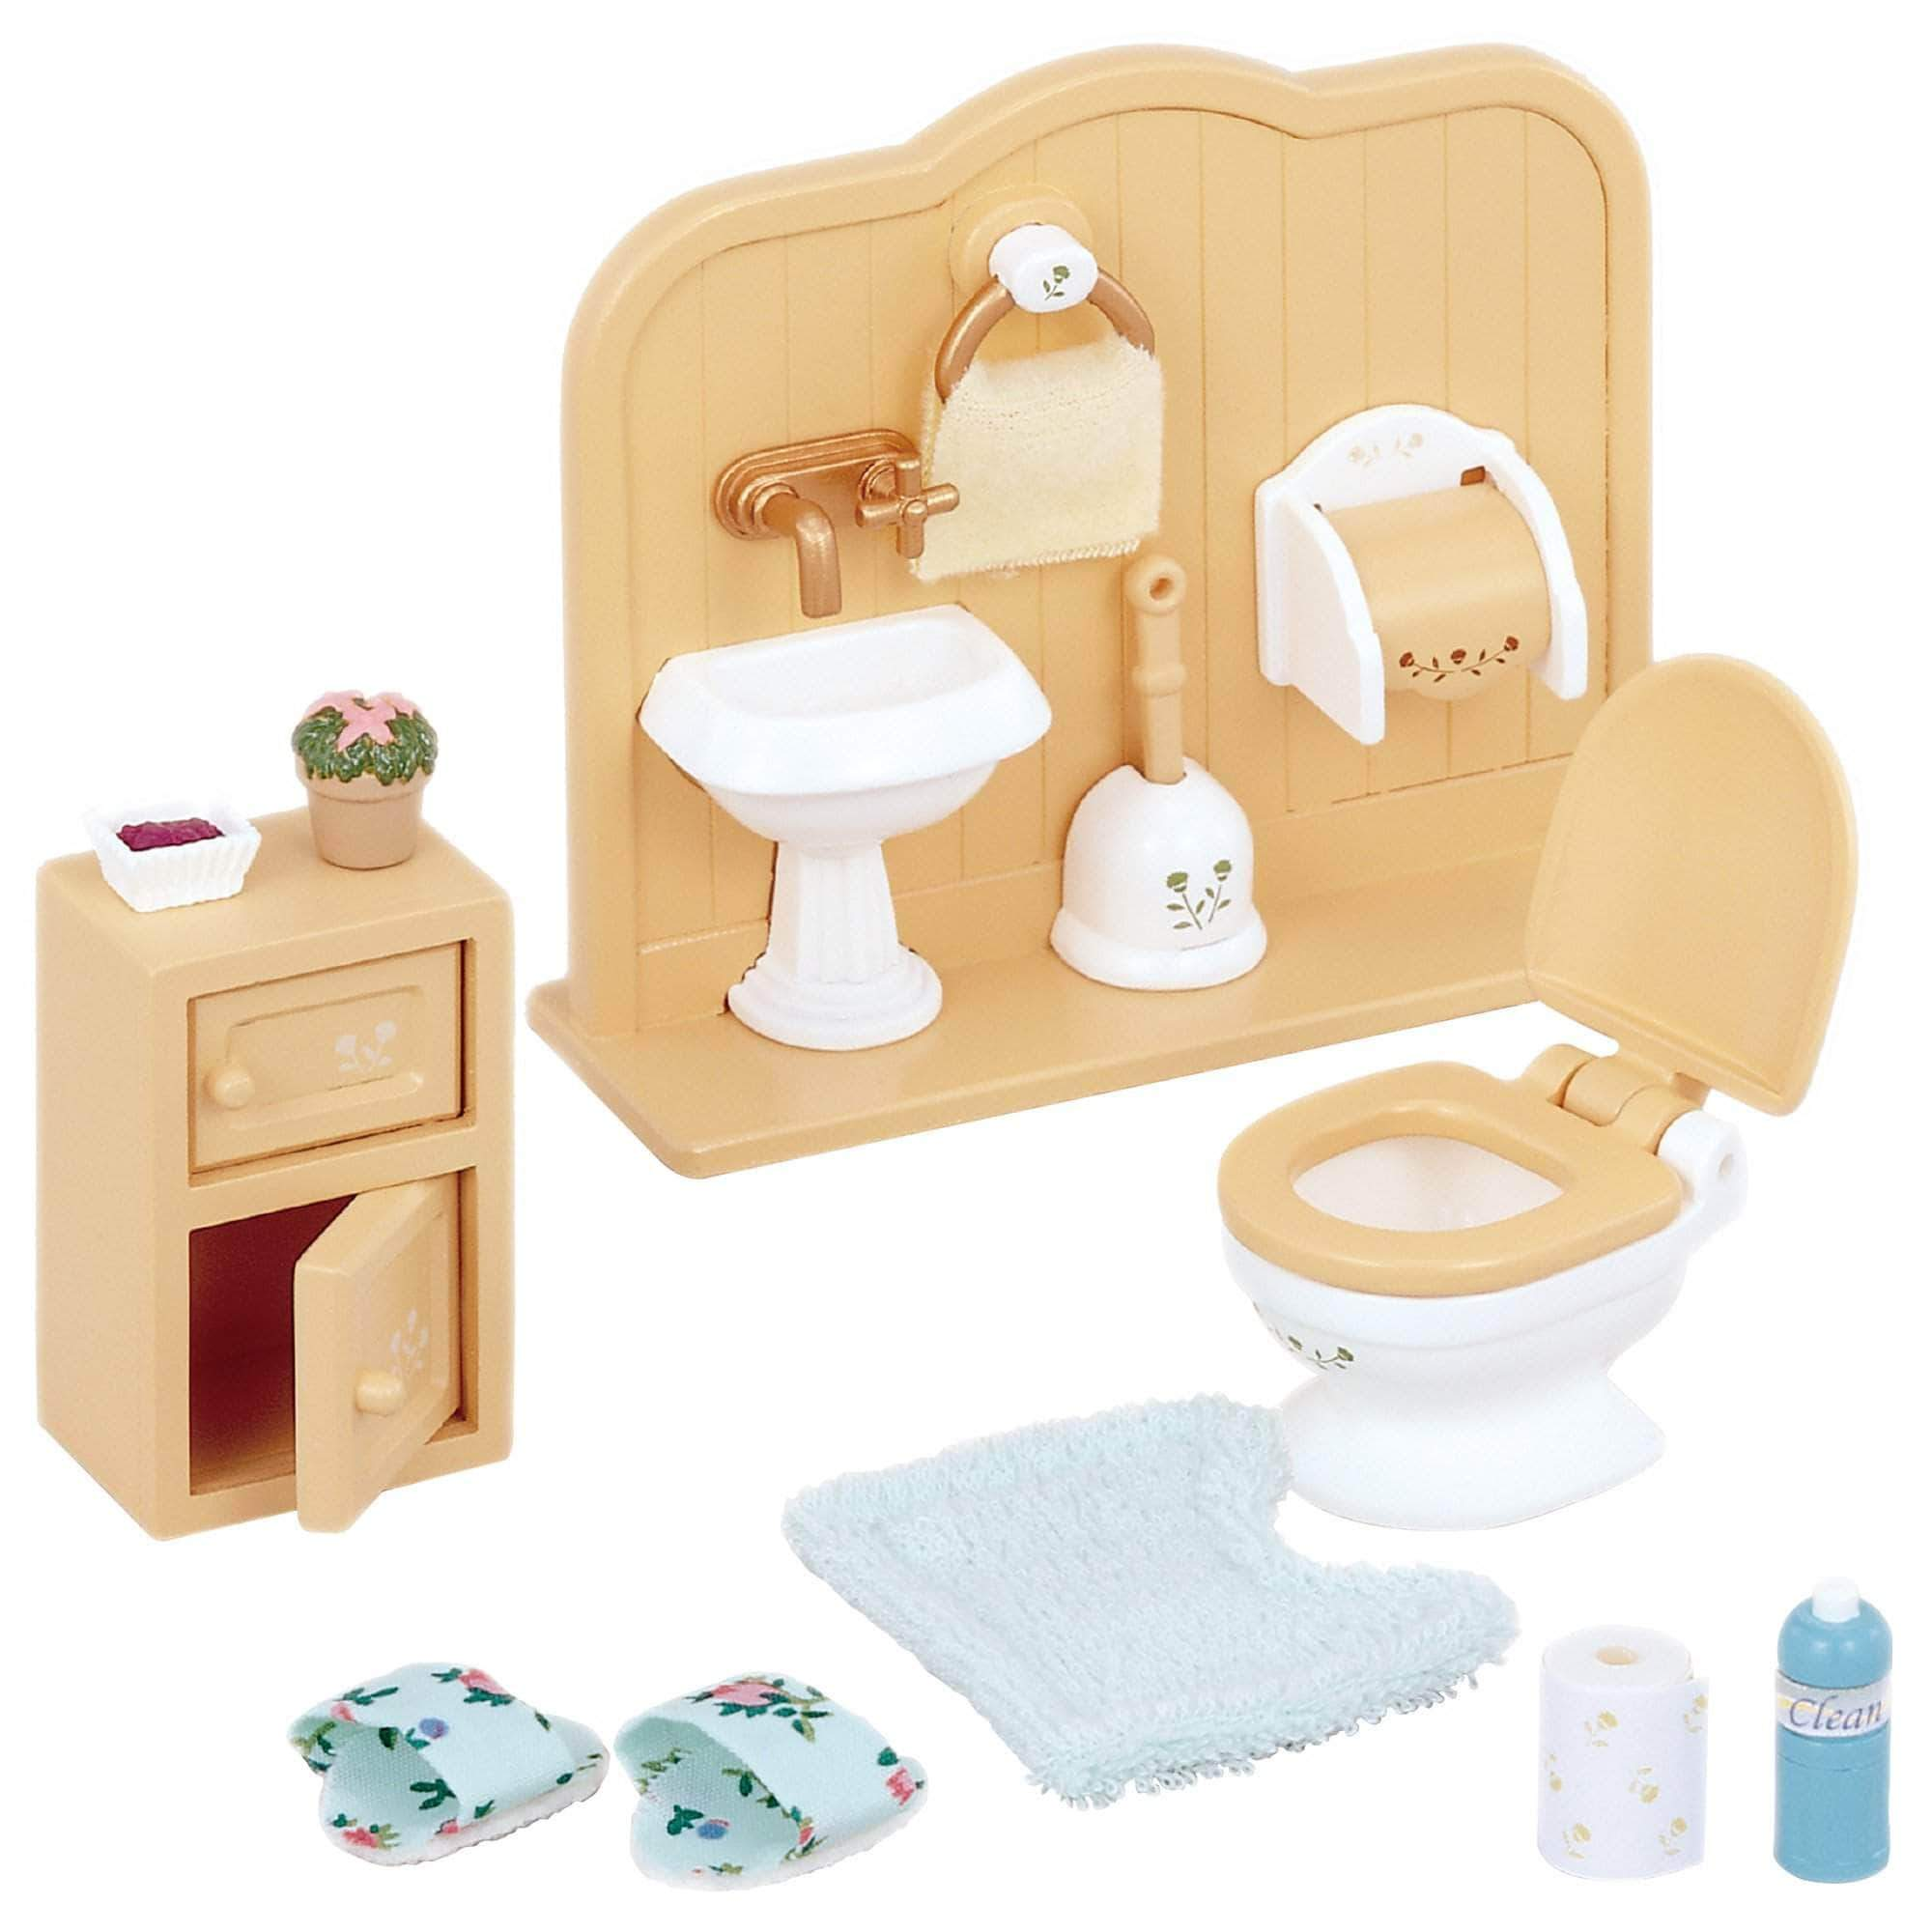 Amazon Sylvanian Families- Toilet Set Mini muñecas y Accesorios, Multicolor (Epoch para Imaginar 3563)